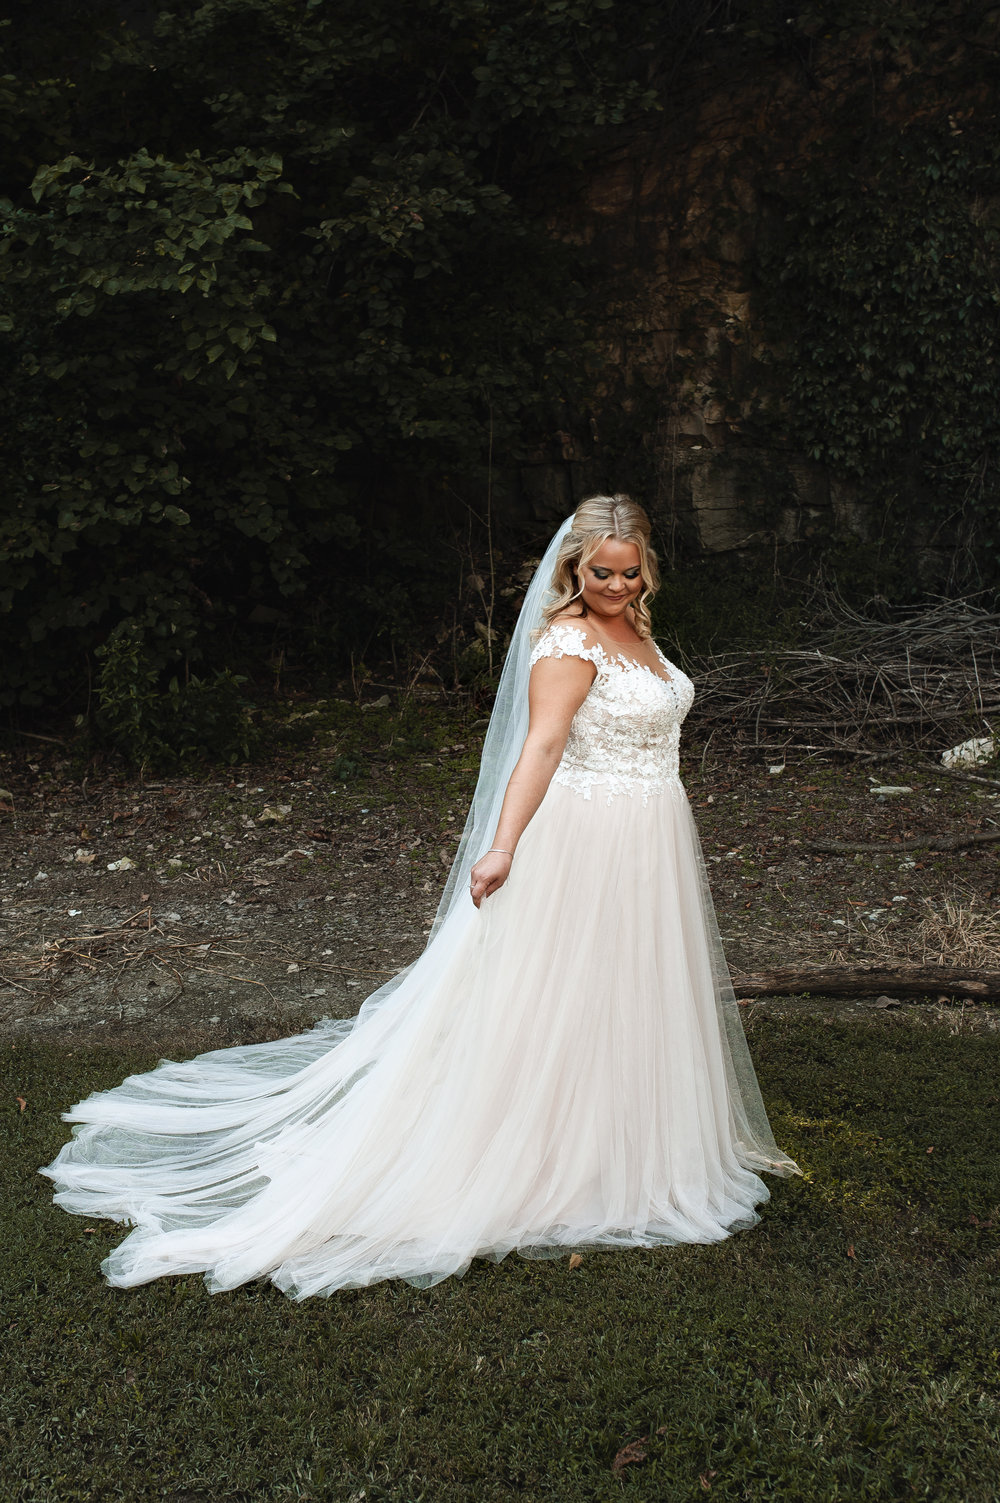 Bride, Sidney looking AMAZING, this dress was meant for her